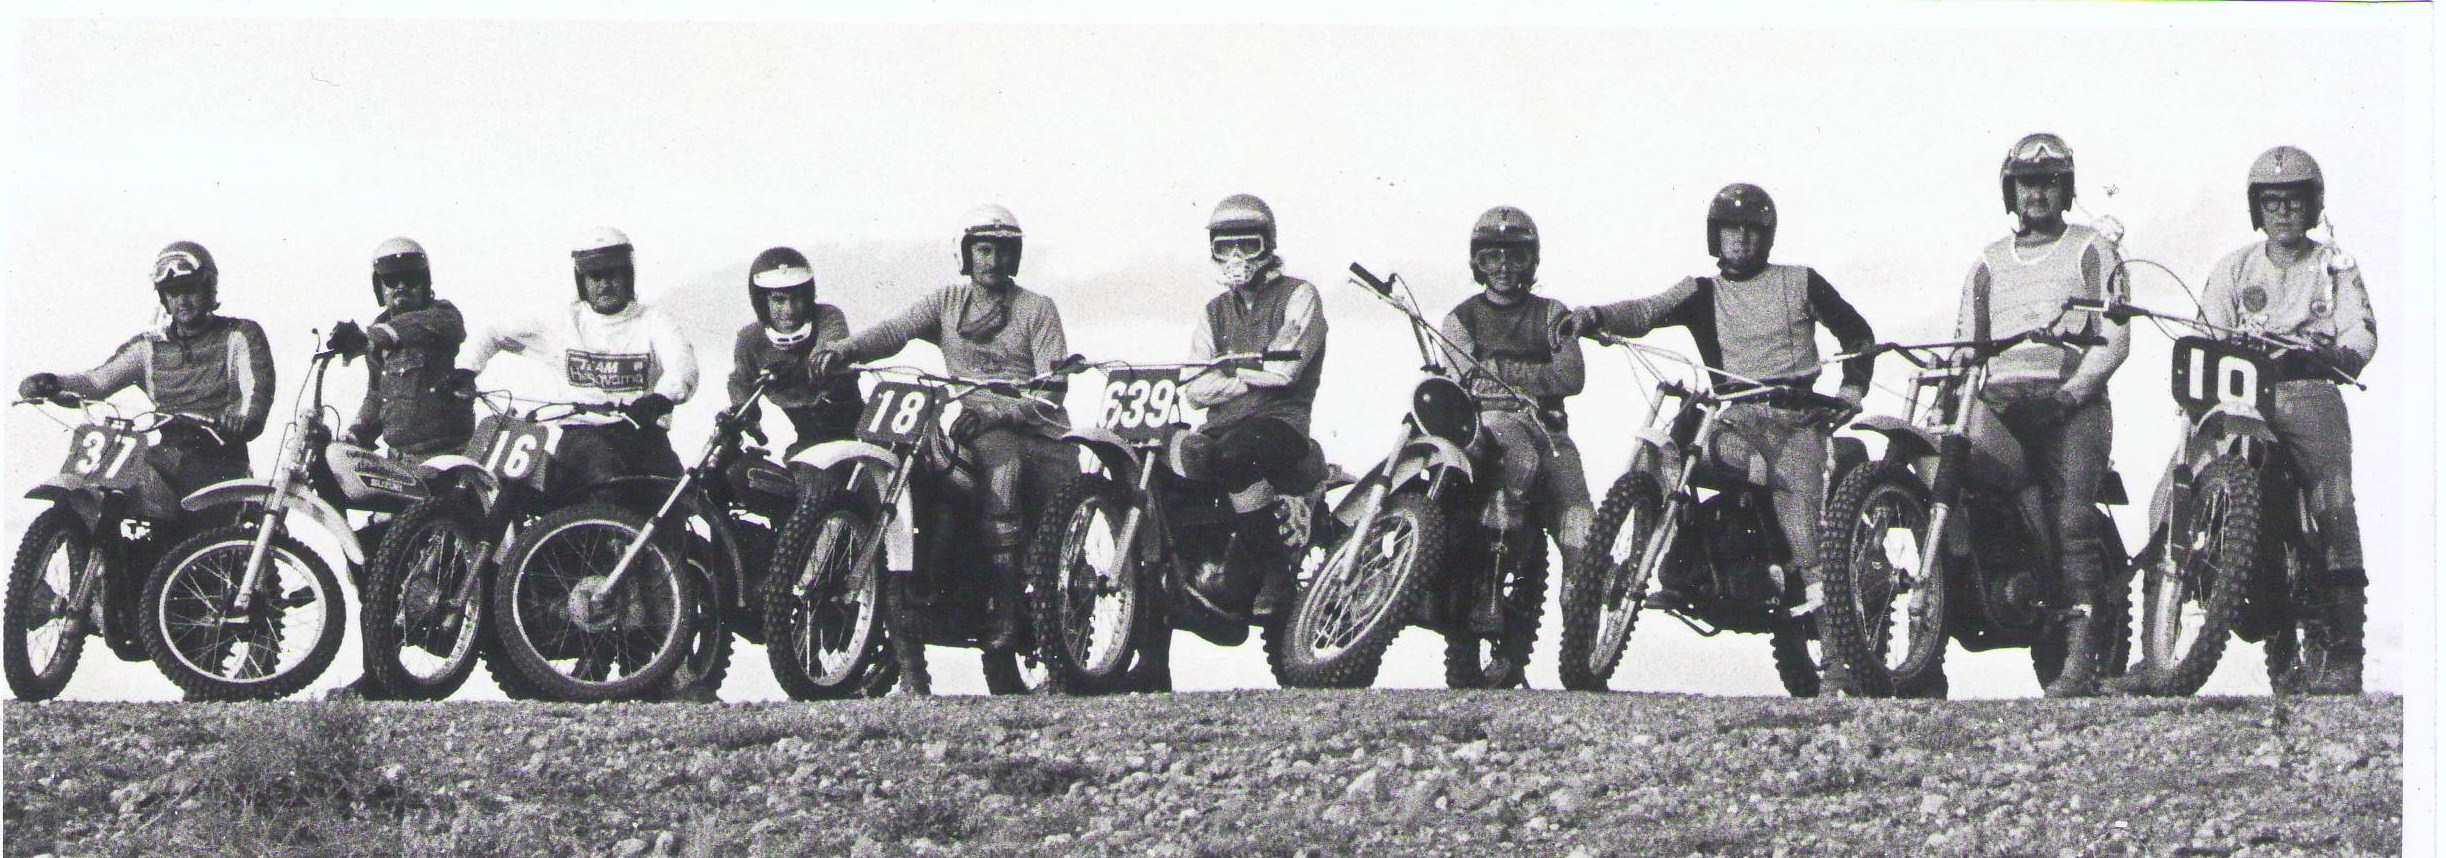 SCMCC 1973 Riders for Pt Pirie MX Easter